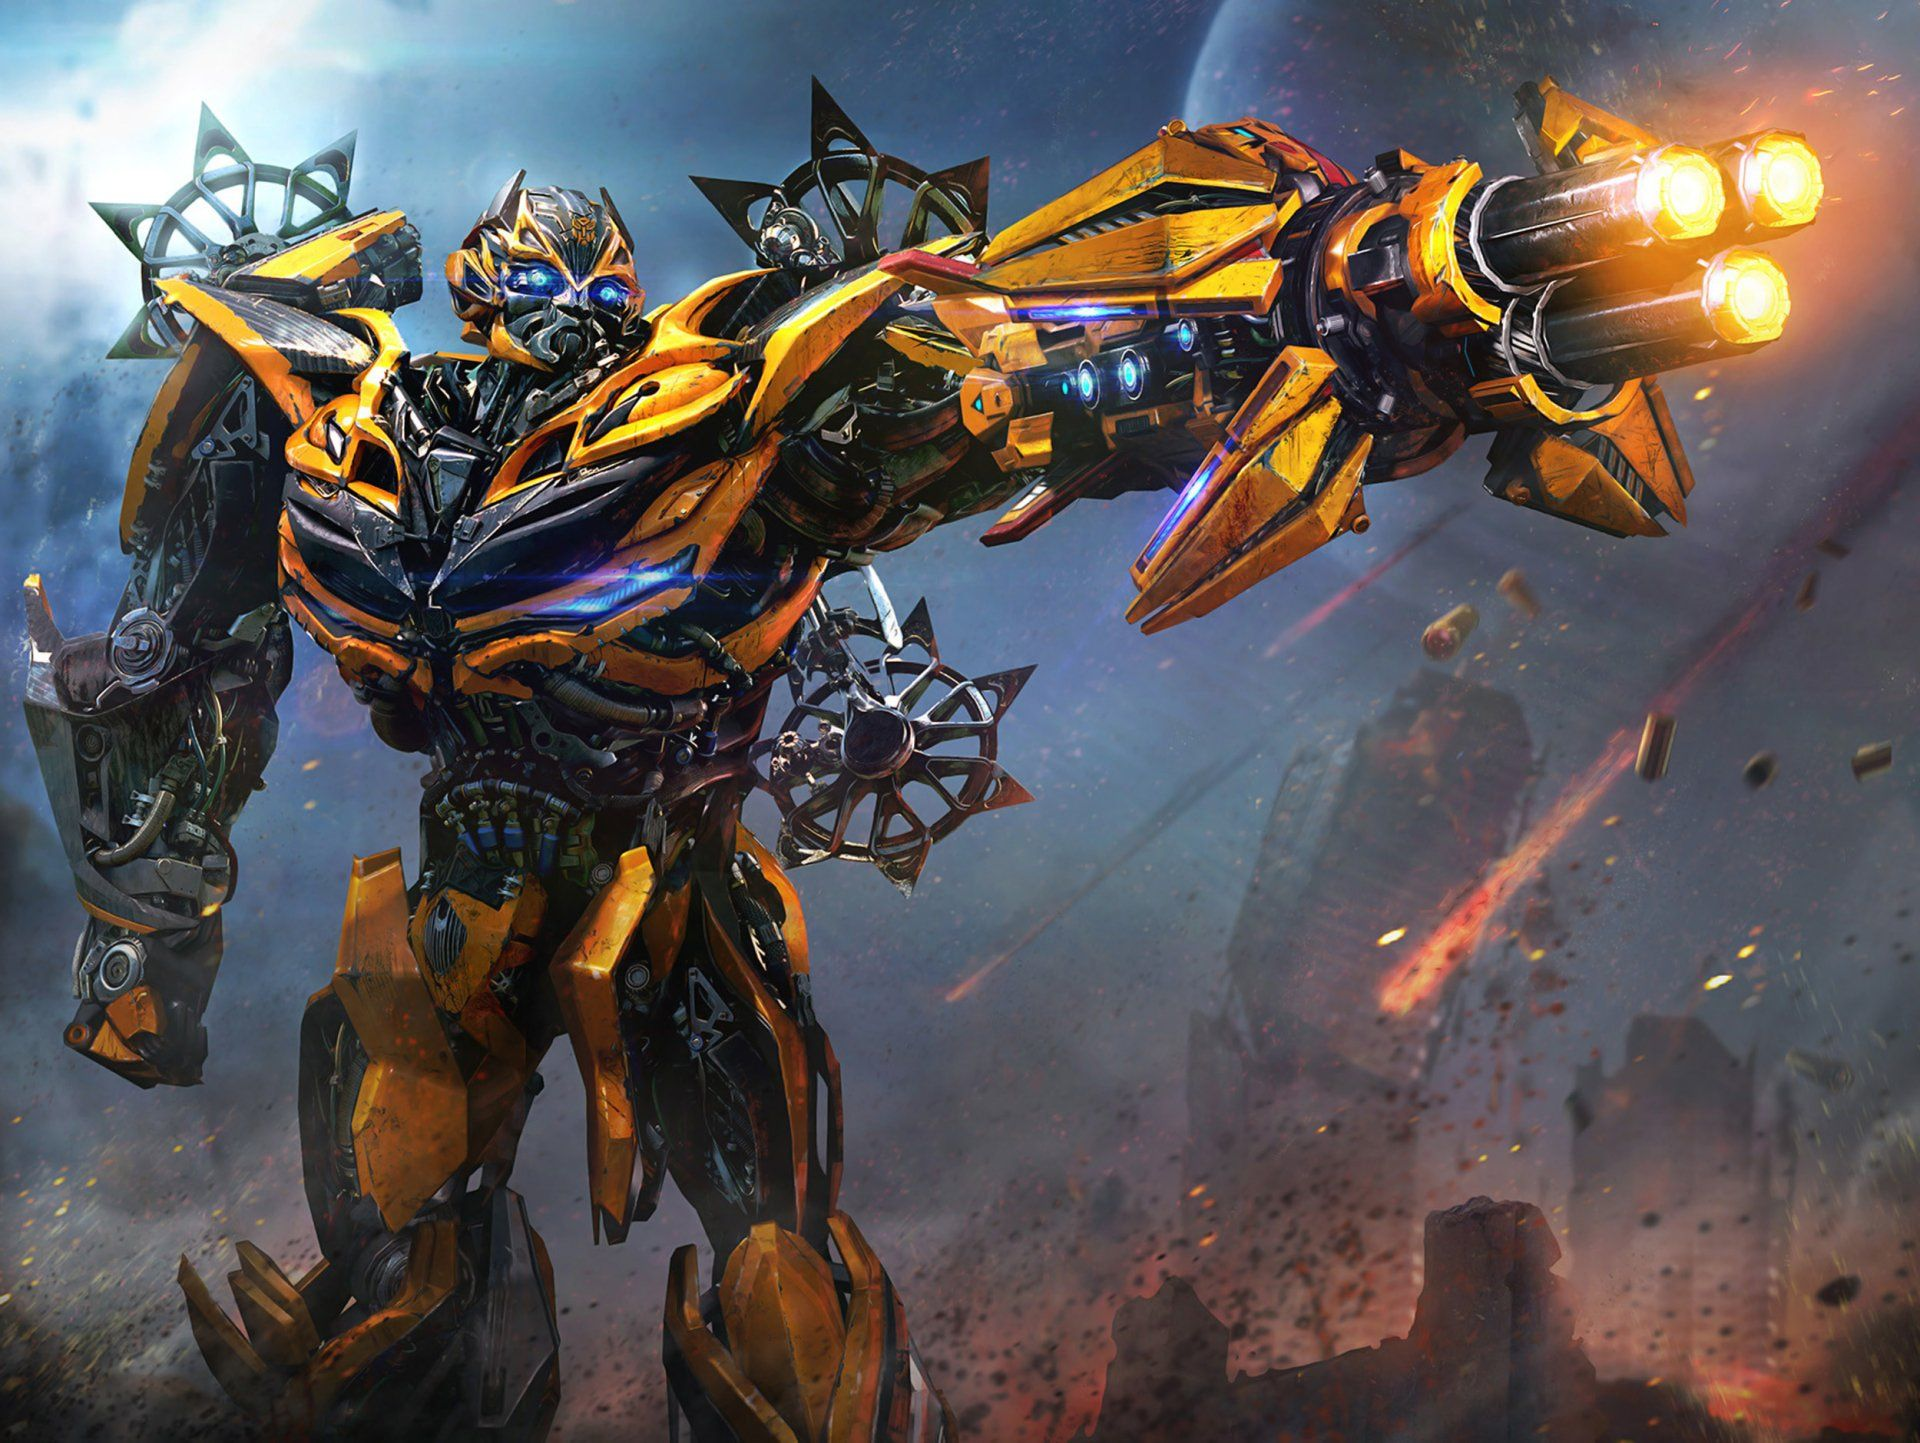 2500x1879 Bumblebee Transformers Wallpaper Background Image View Download Comment Transformers Megatron Optimus Prime Wallpaper Transformers Transformers